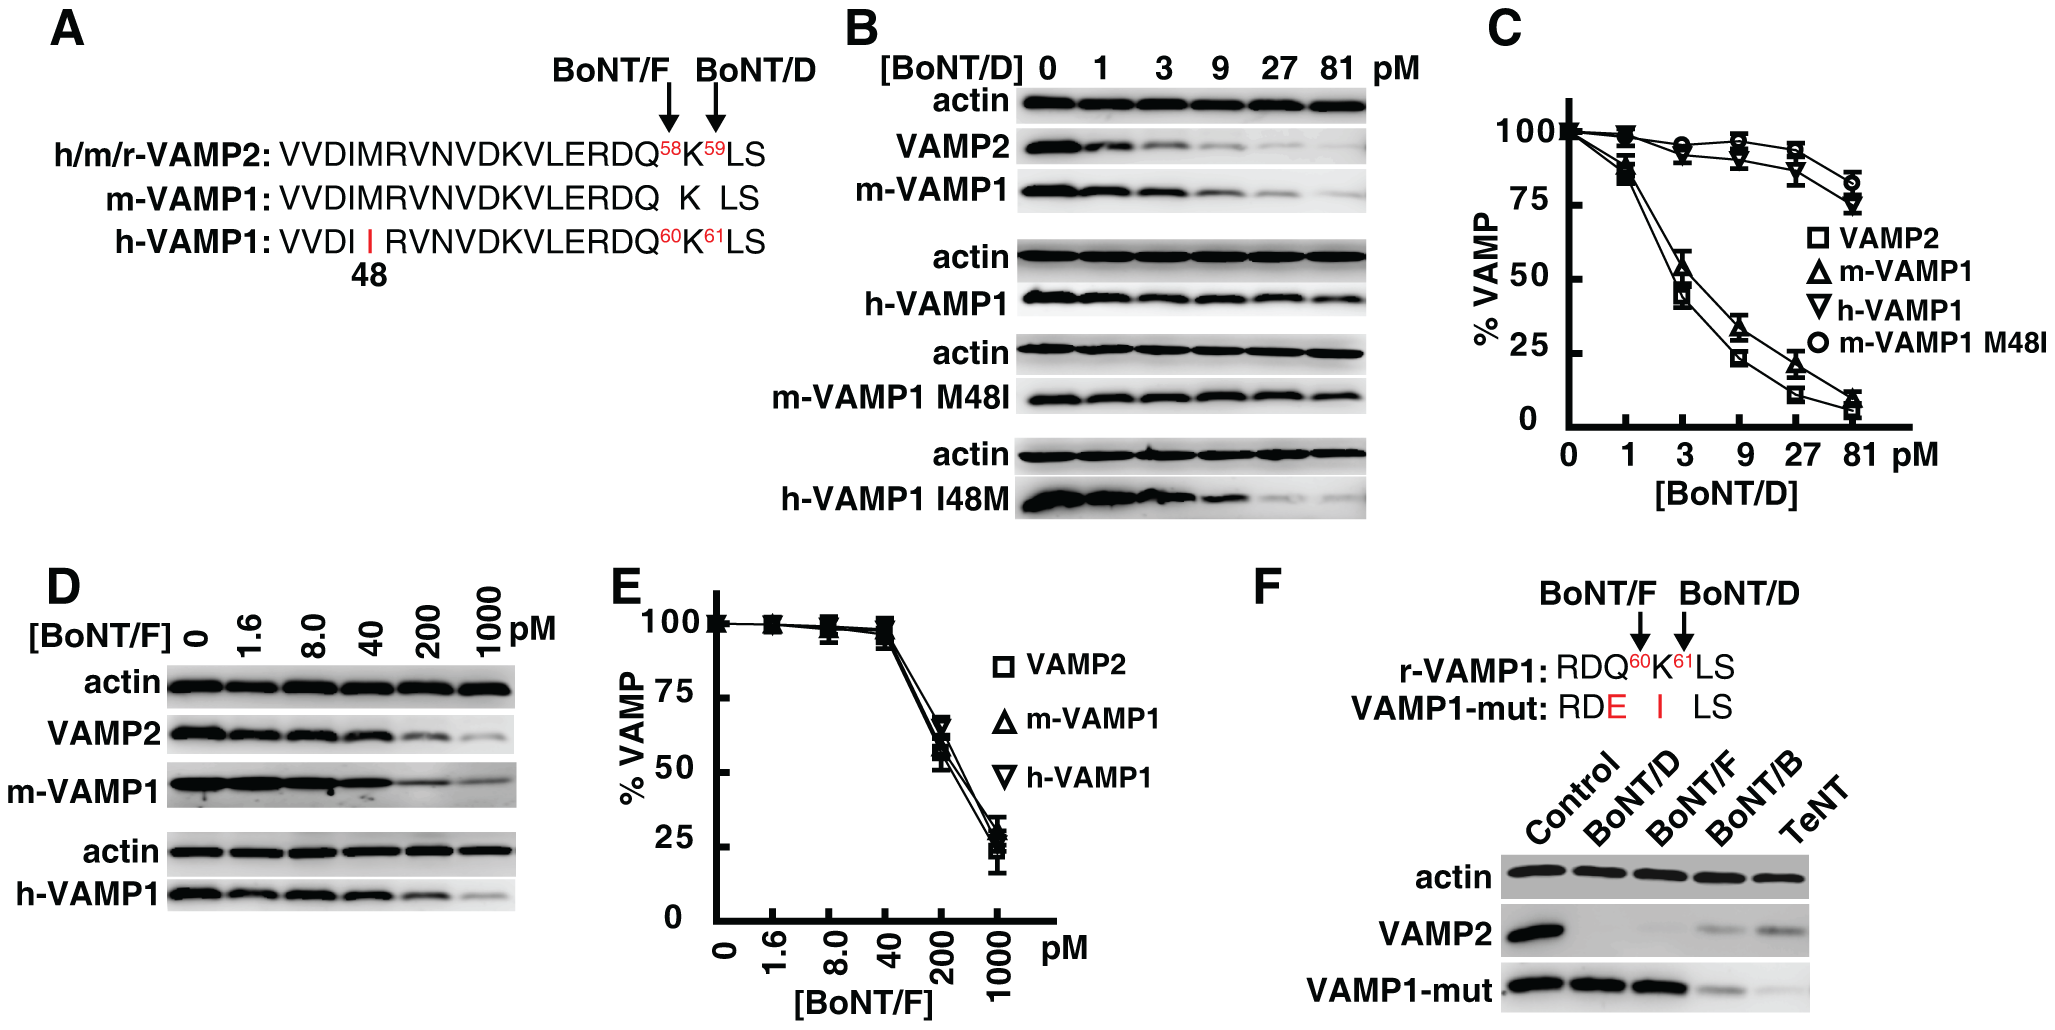 Human VAMP1 is a poor substrate for BoNT/D in neurons.